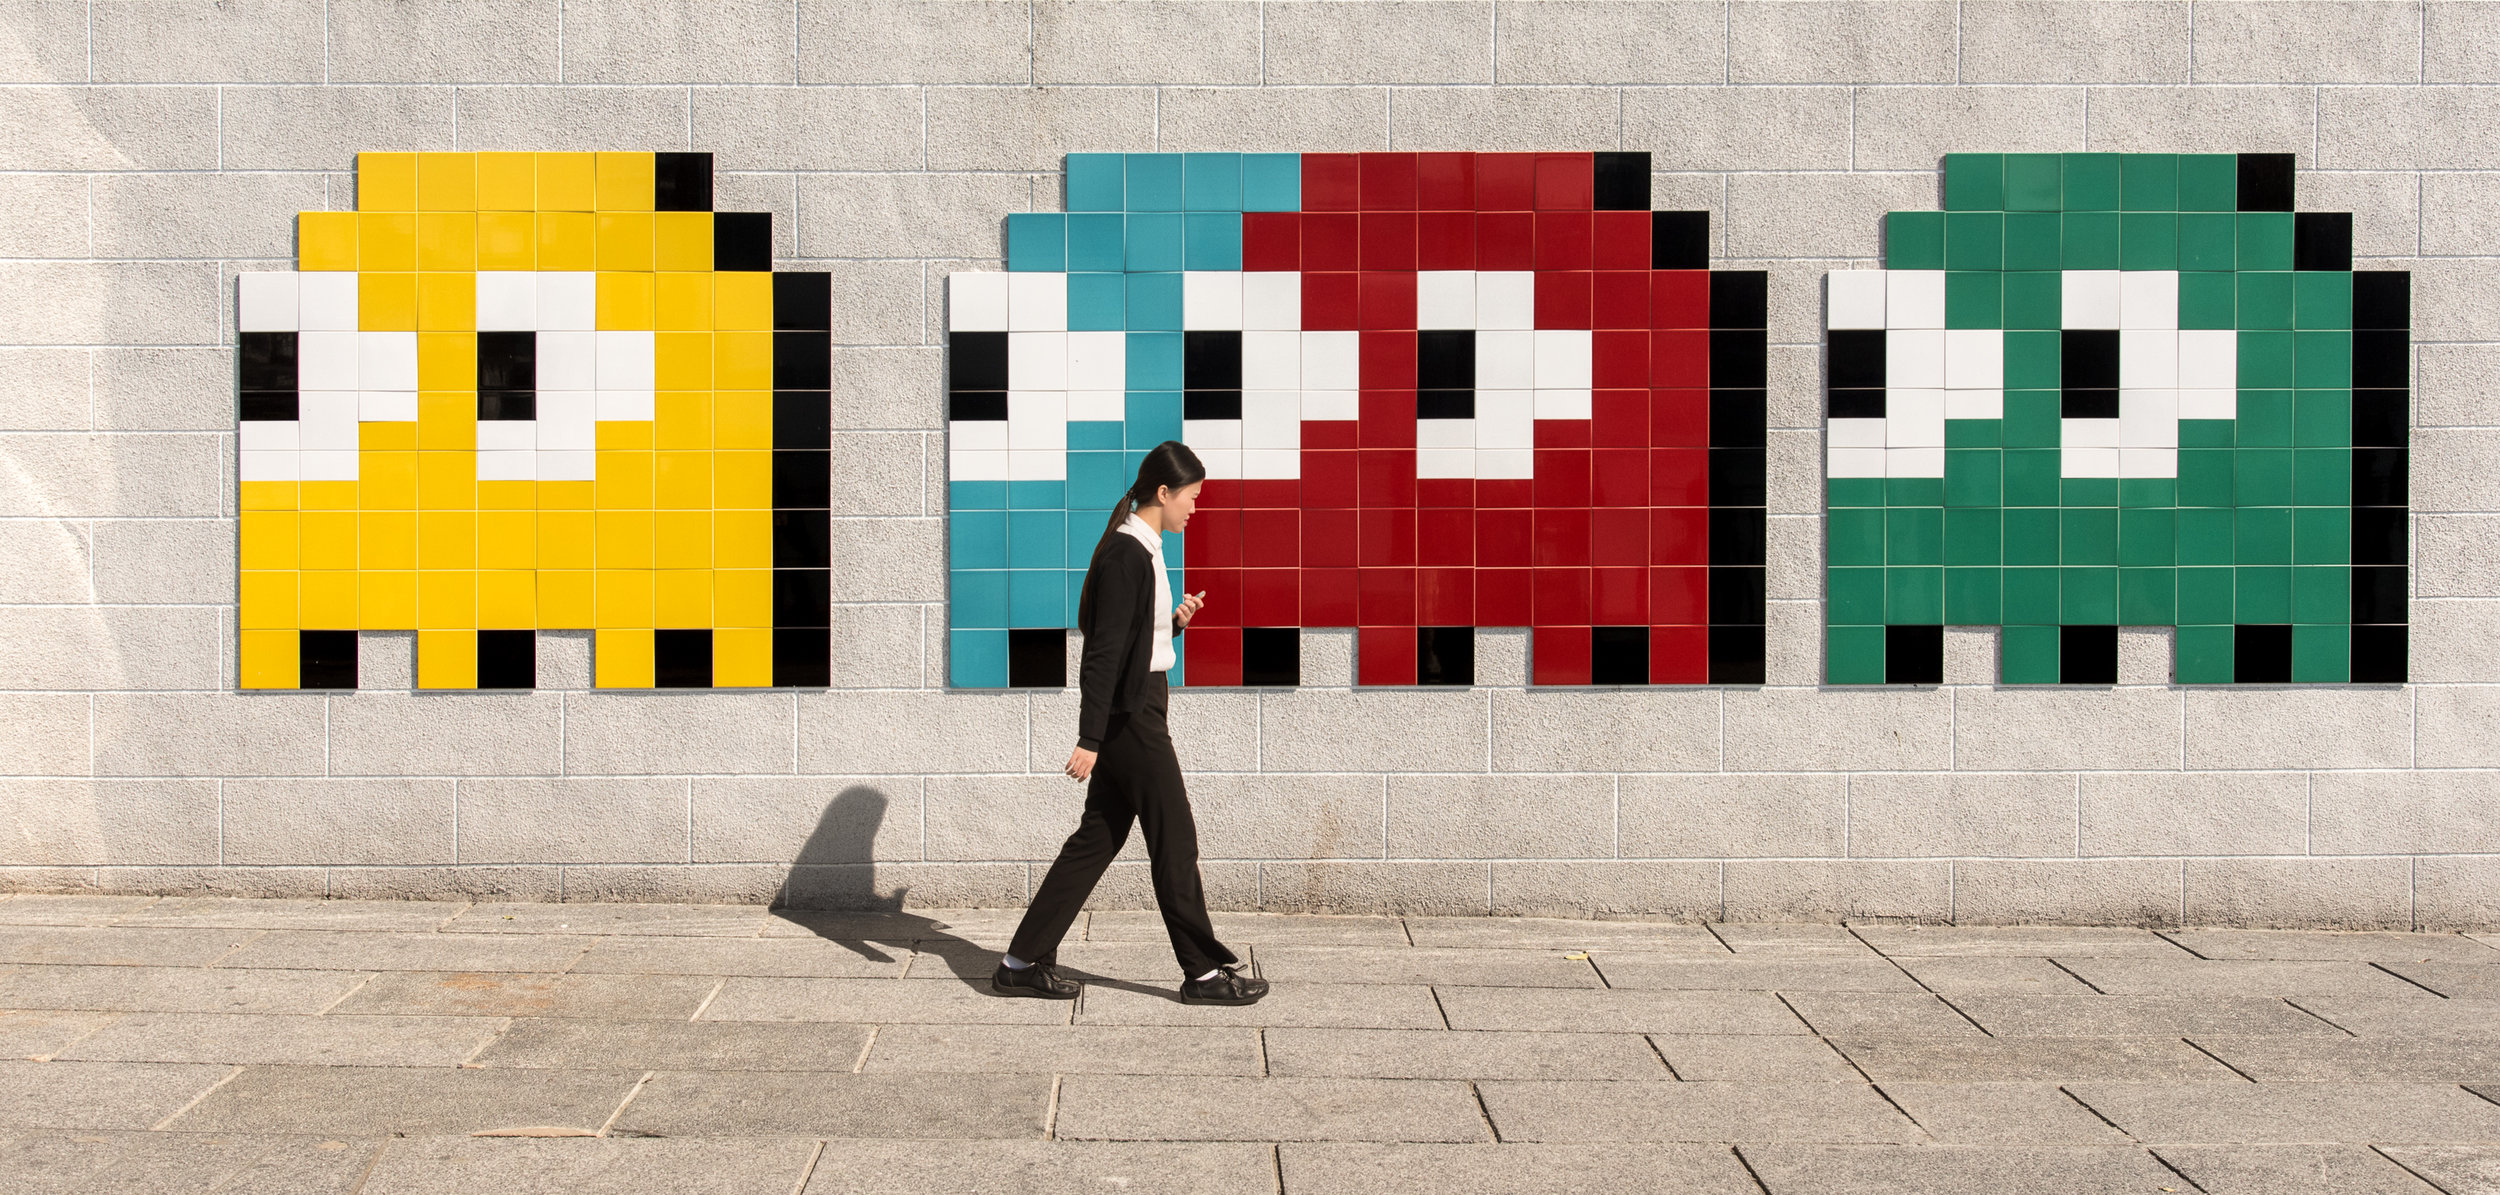 Blinky, Pinky, Inky and Clyde by Invader - Ocean Terminal Mall, Hong Kong